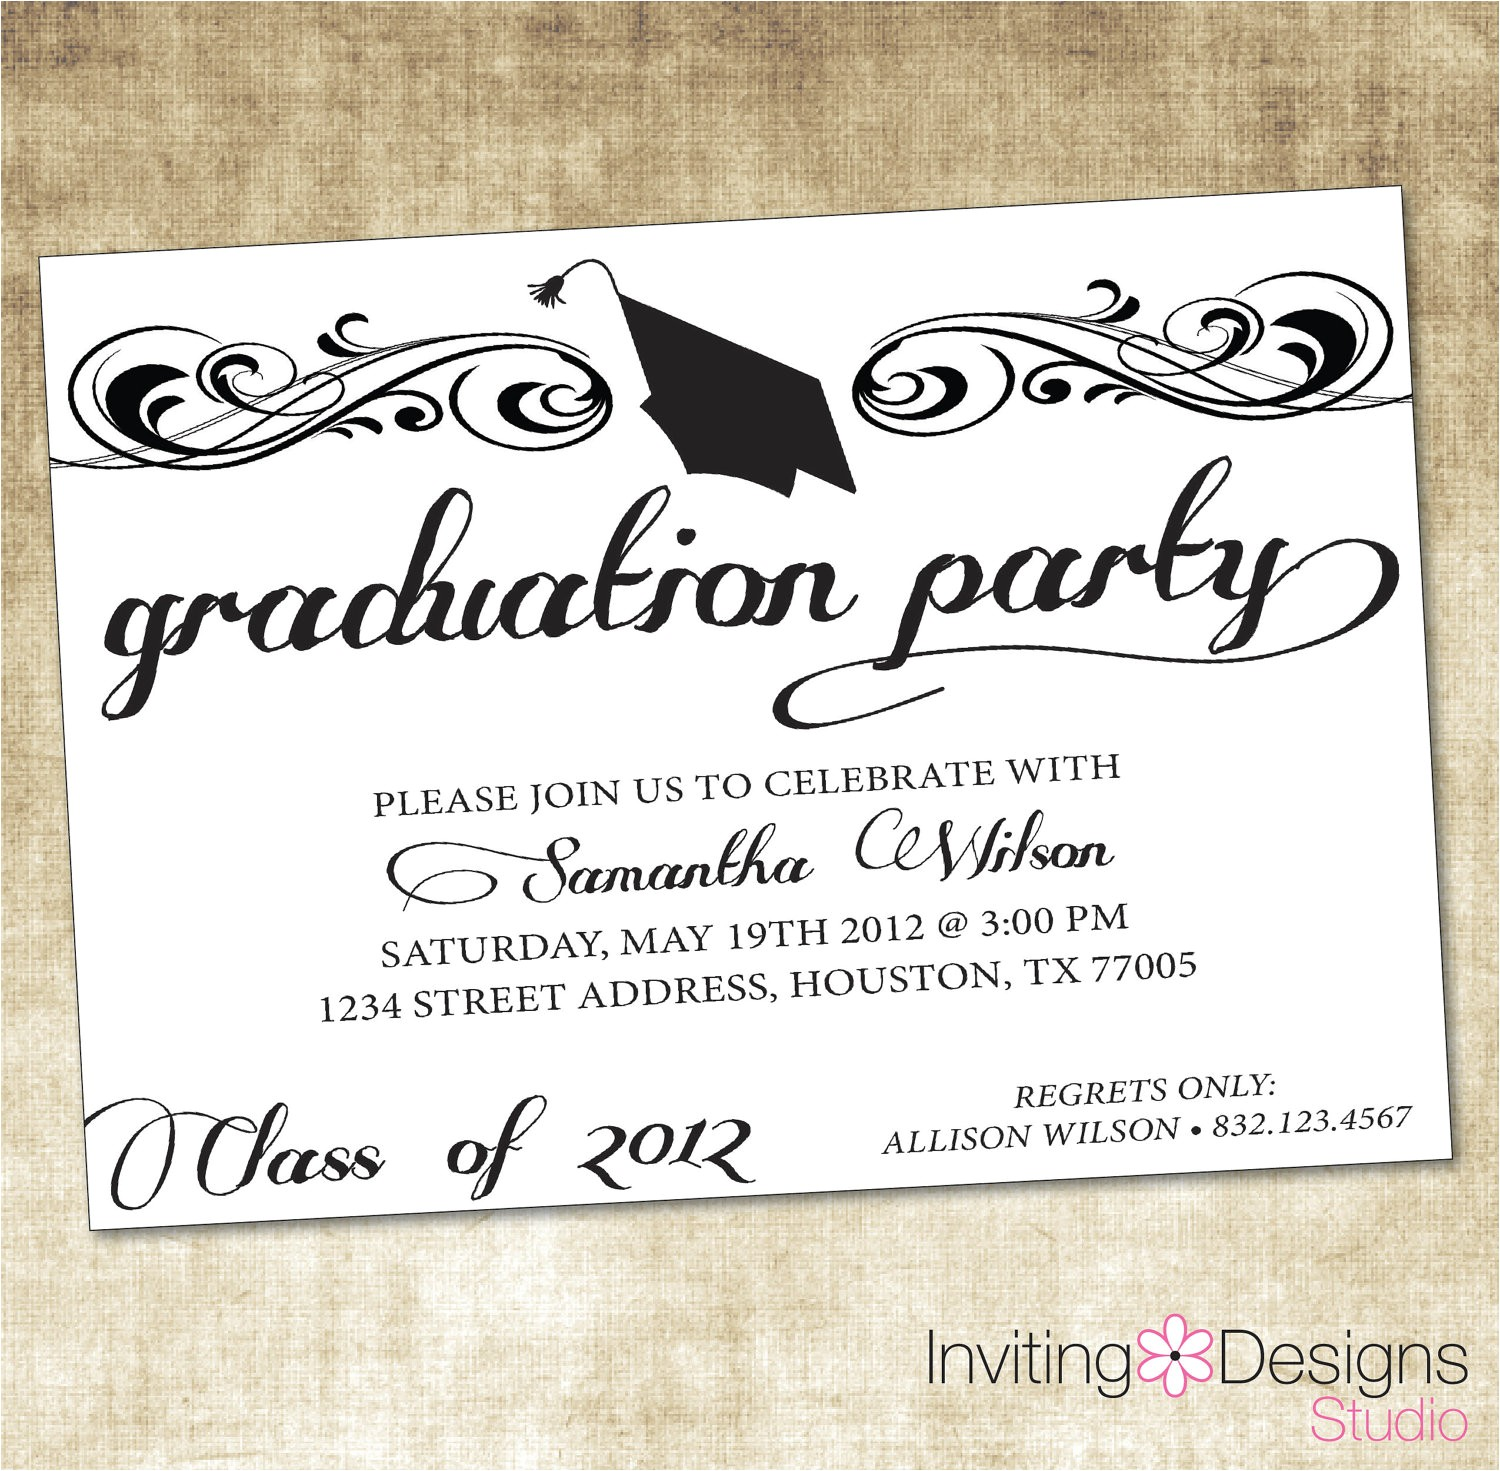 Graduation Invitation Party Wording Unique Ideas for College Graduation Party Invitations